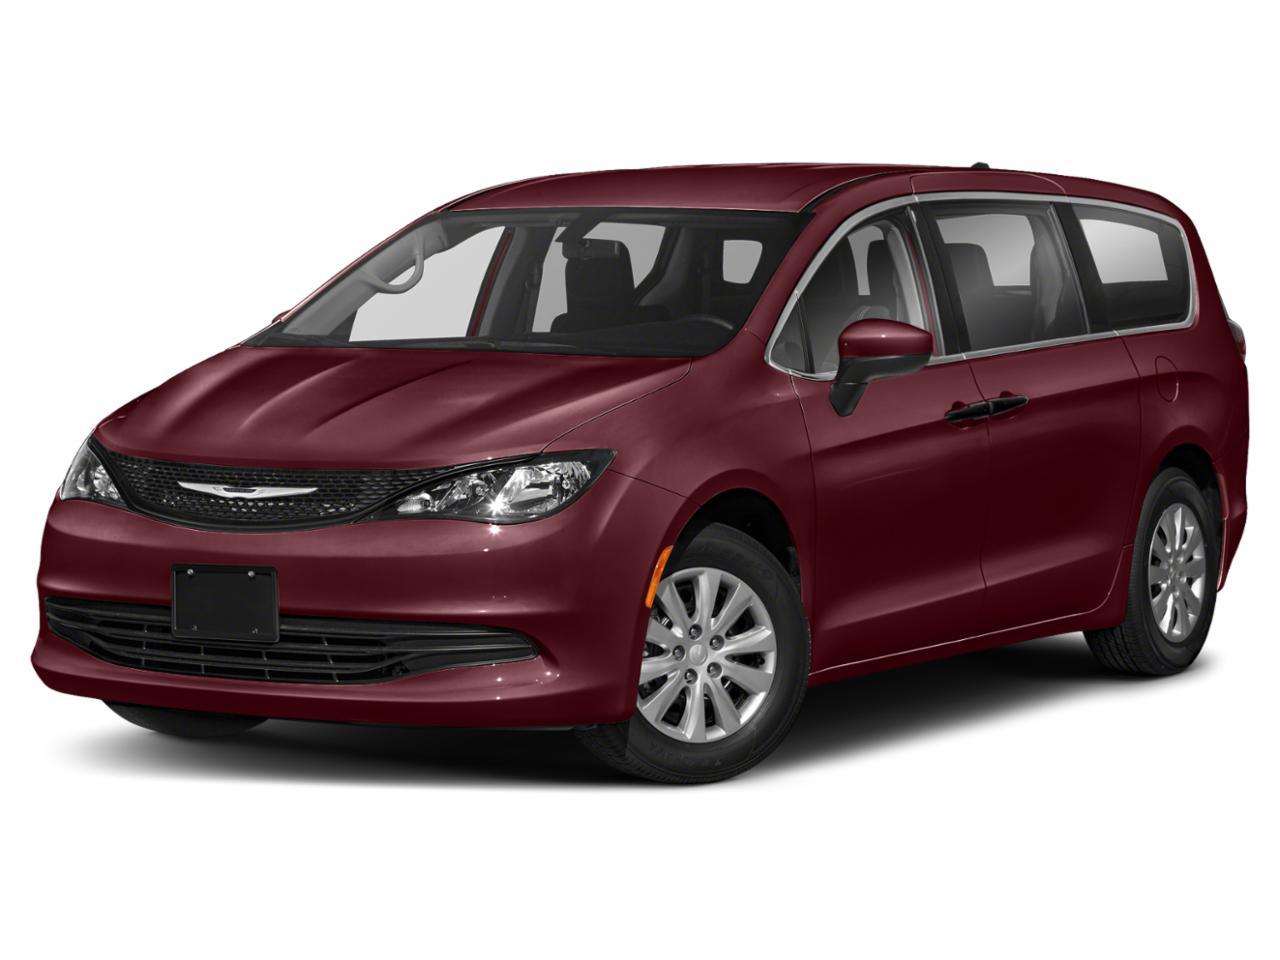 2020 Chrysler Voyager Vehicle Photo in Beaufort, SC 29906